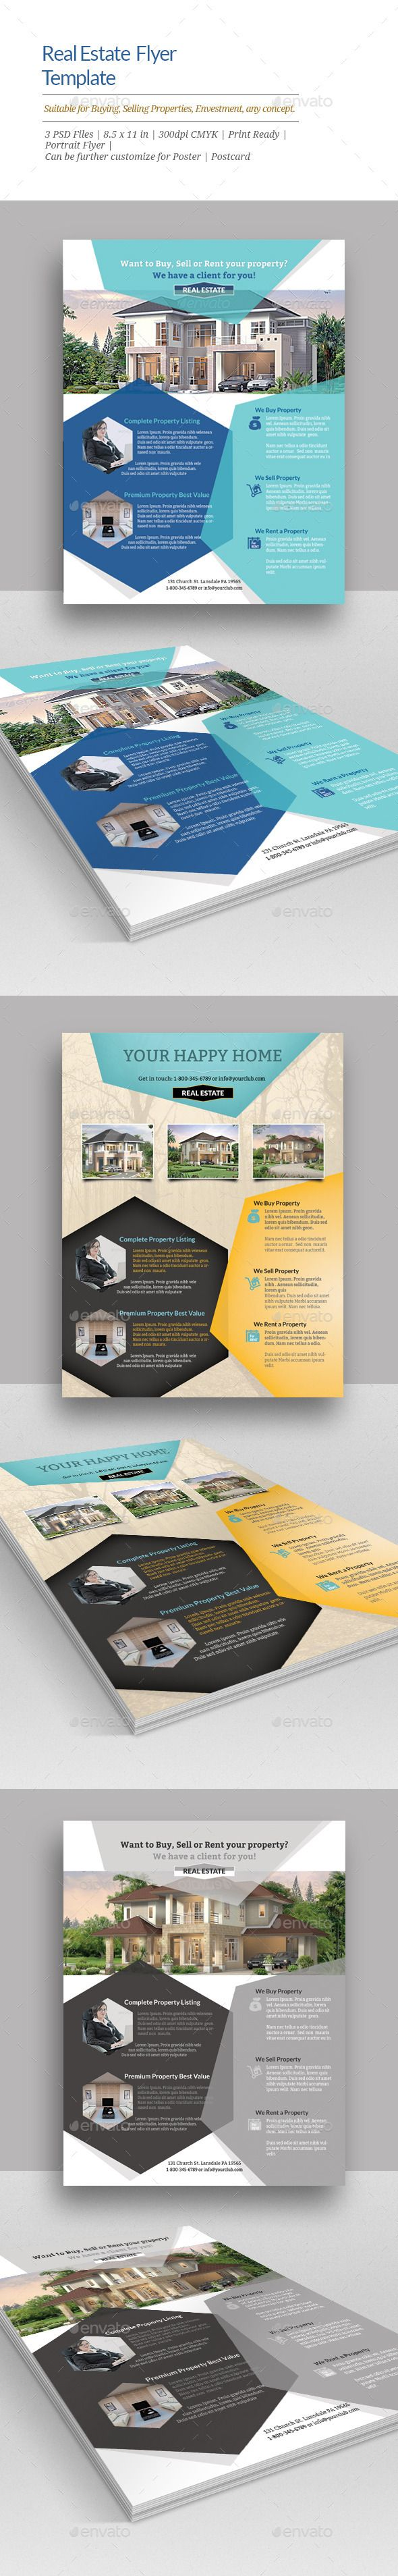 real estate flyer templates flyer template real estate flyers real estate flyer templates corporate flyers here